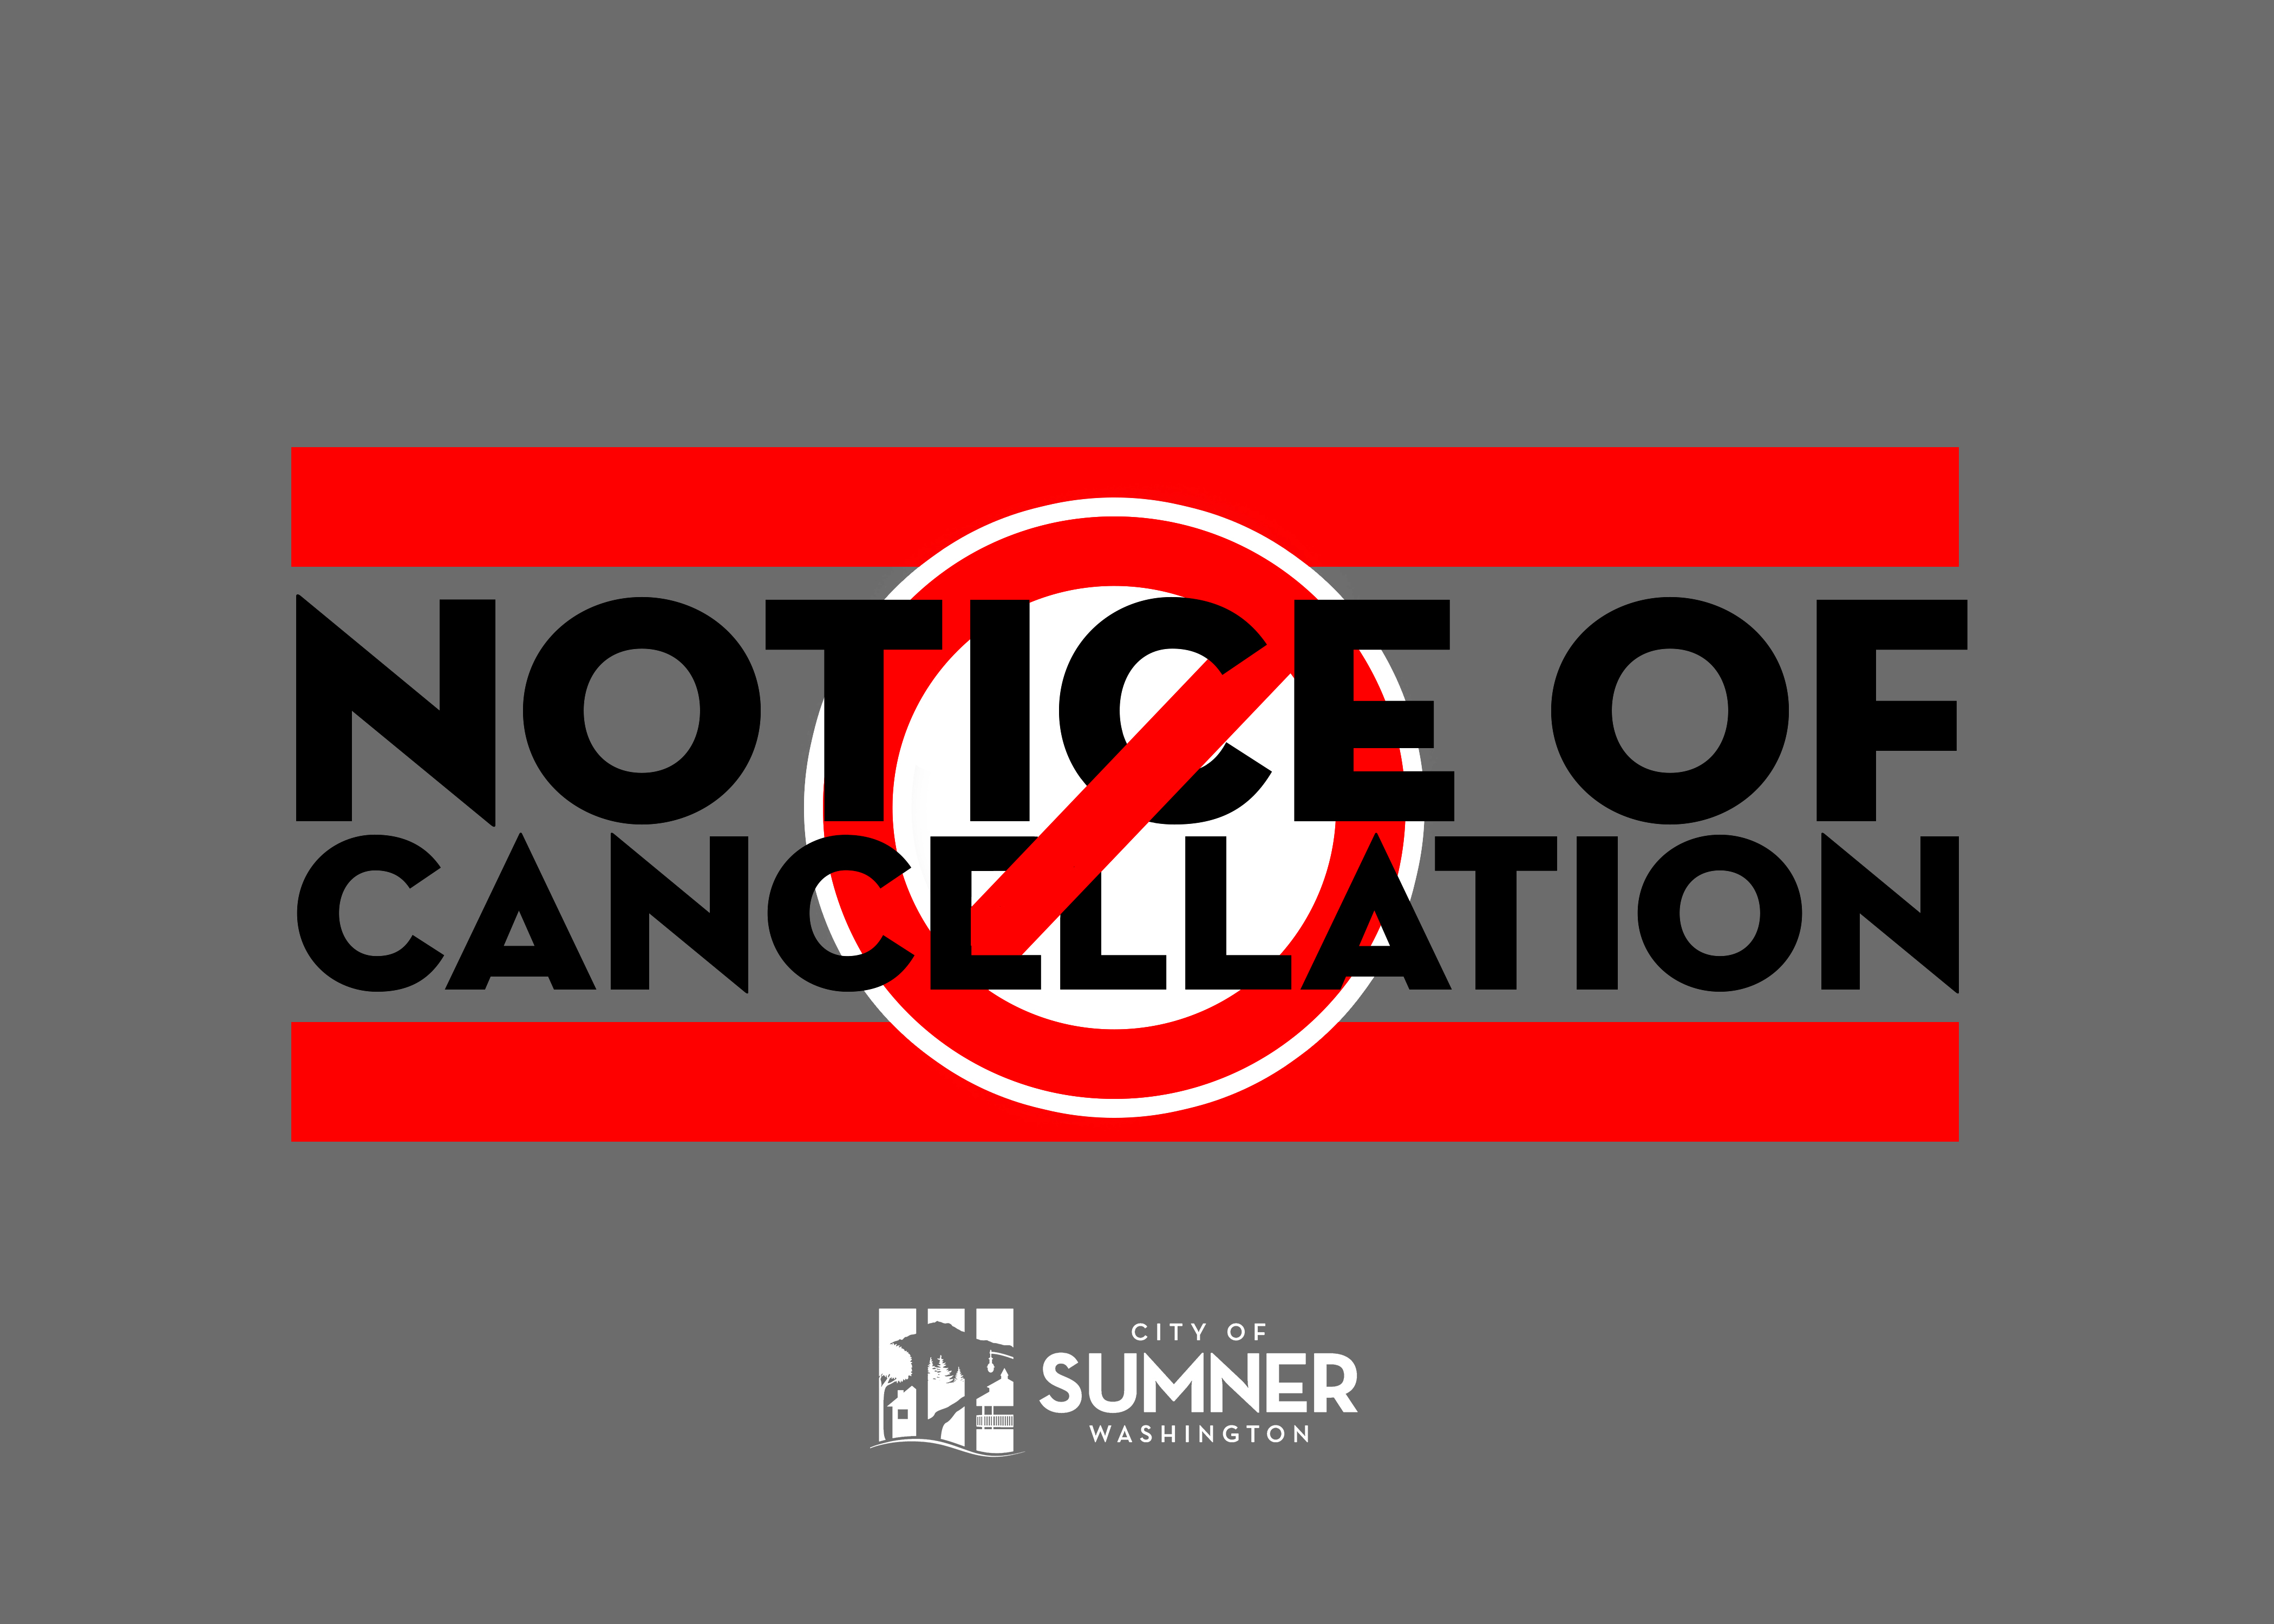 noticeofcancellationdark